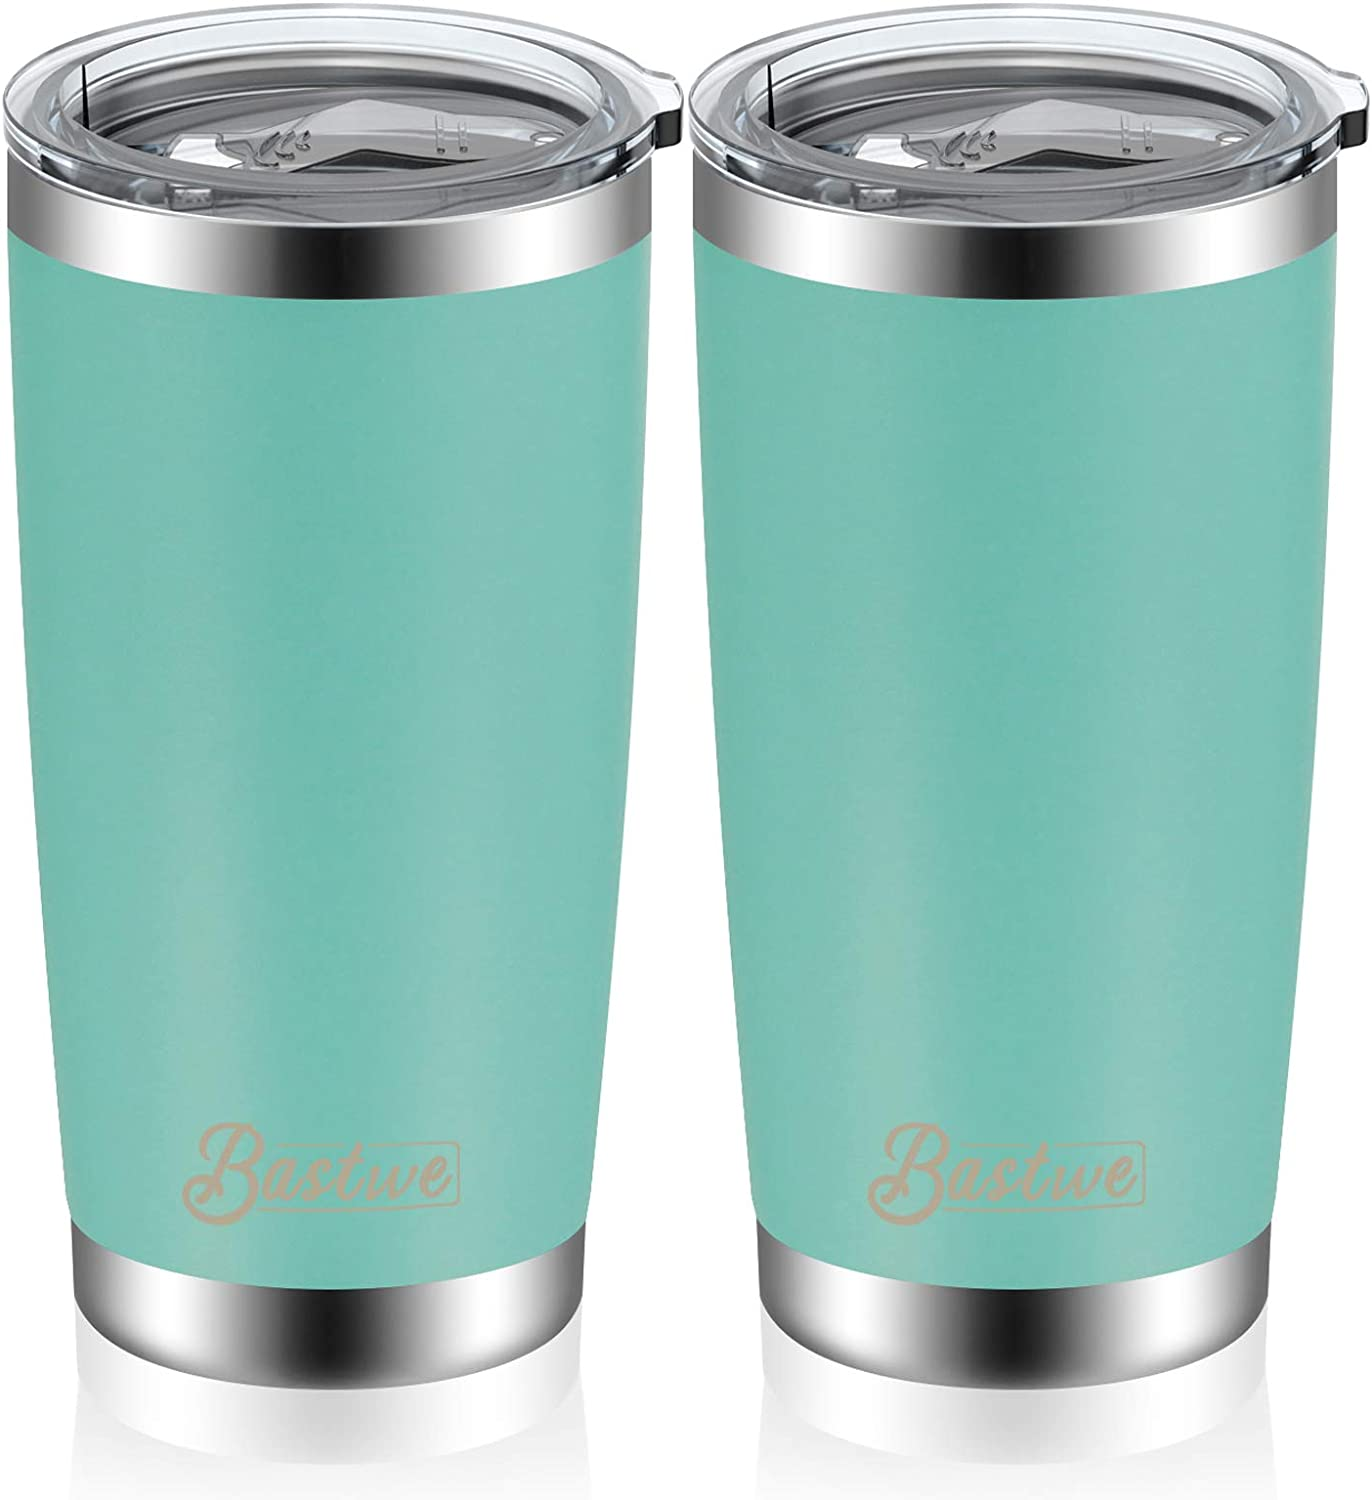 Office 2 Pack, Black School Bastwe Double Wall Vacuum Insulated Travel Mug Coffee Cup for Home Works Great for Ice Drink Hot Beverage 20oz and 30oz Stainless Steel Tumblers with Straws